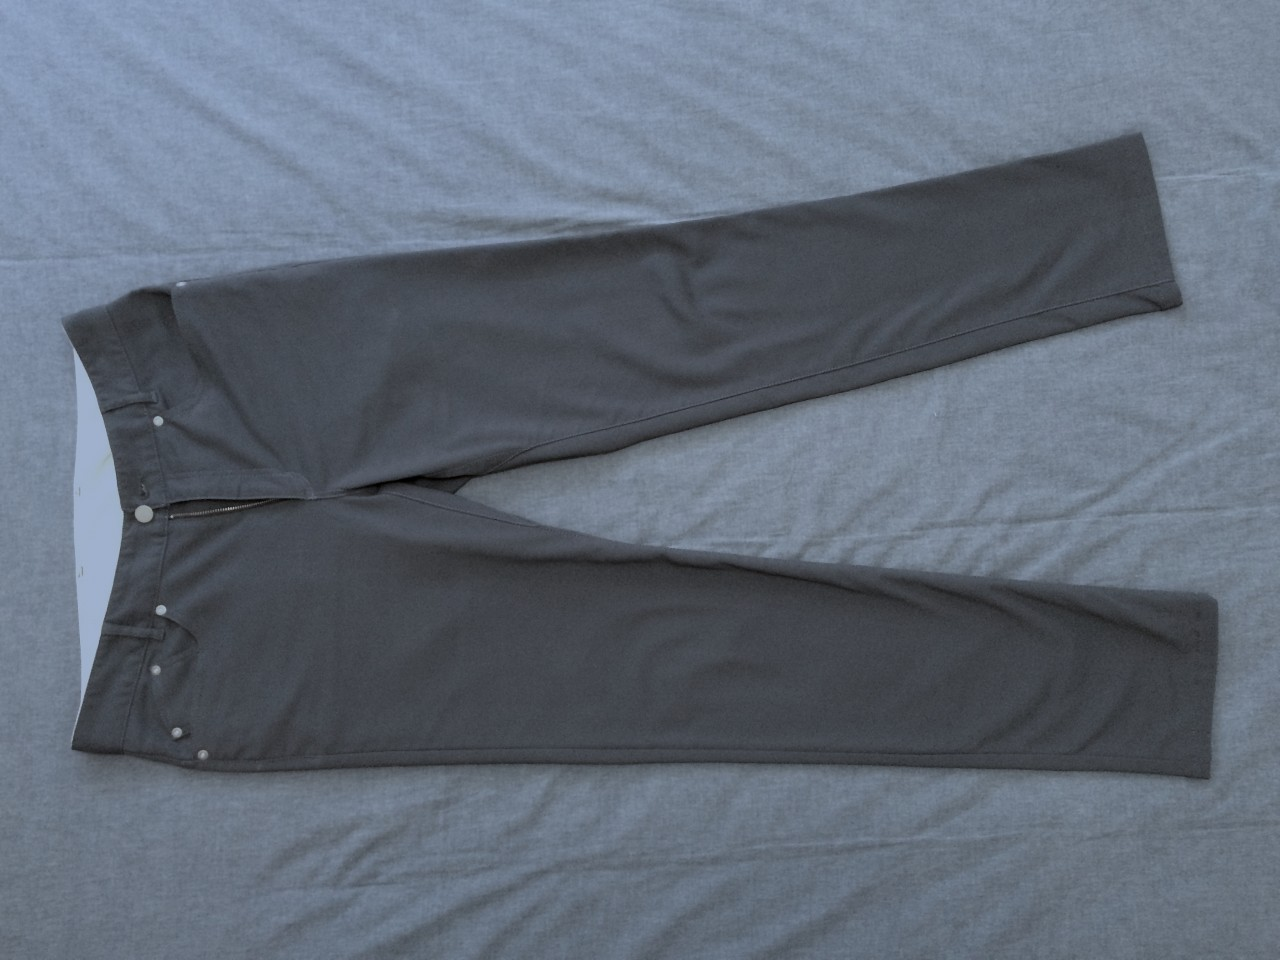 An Obsessive Review Of Outliers Slim Dungarees Snarky Nomad American Standard Smart Washer 3 Seat Cover Wt Try To Find Silly Extraneous Zippers Go Ahead